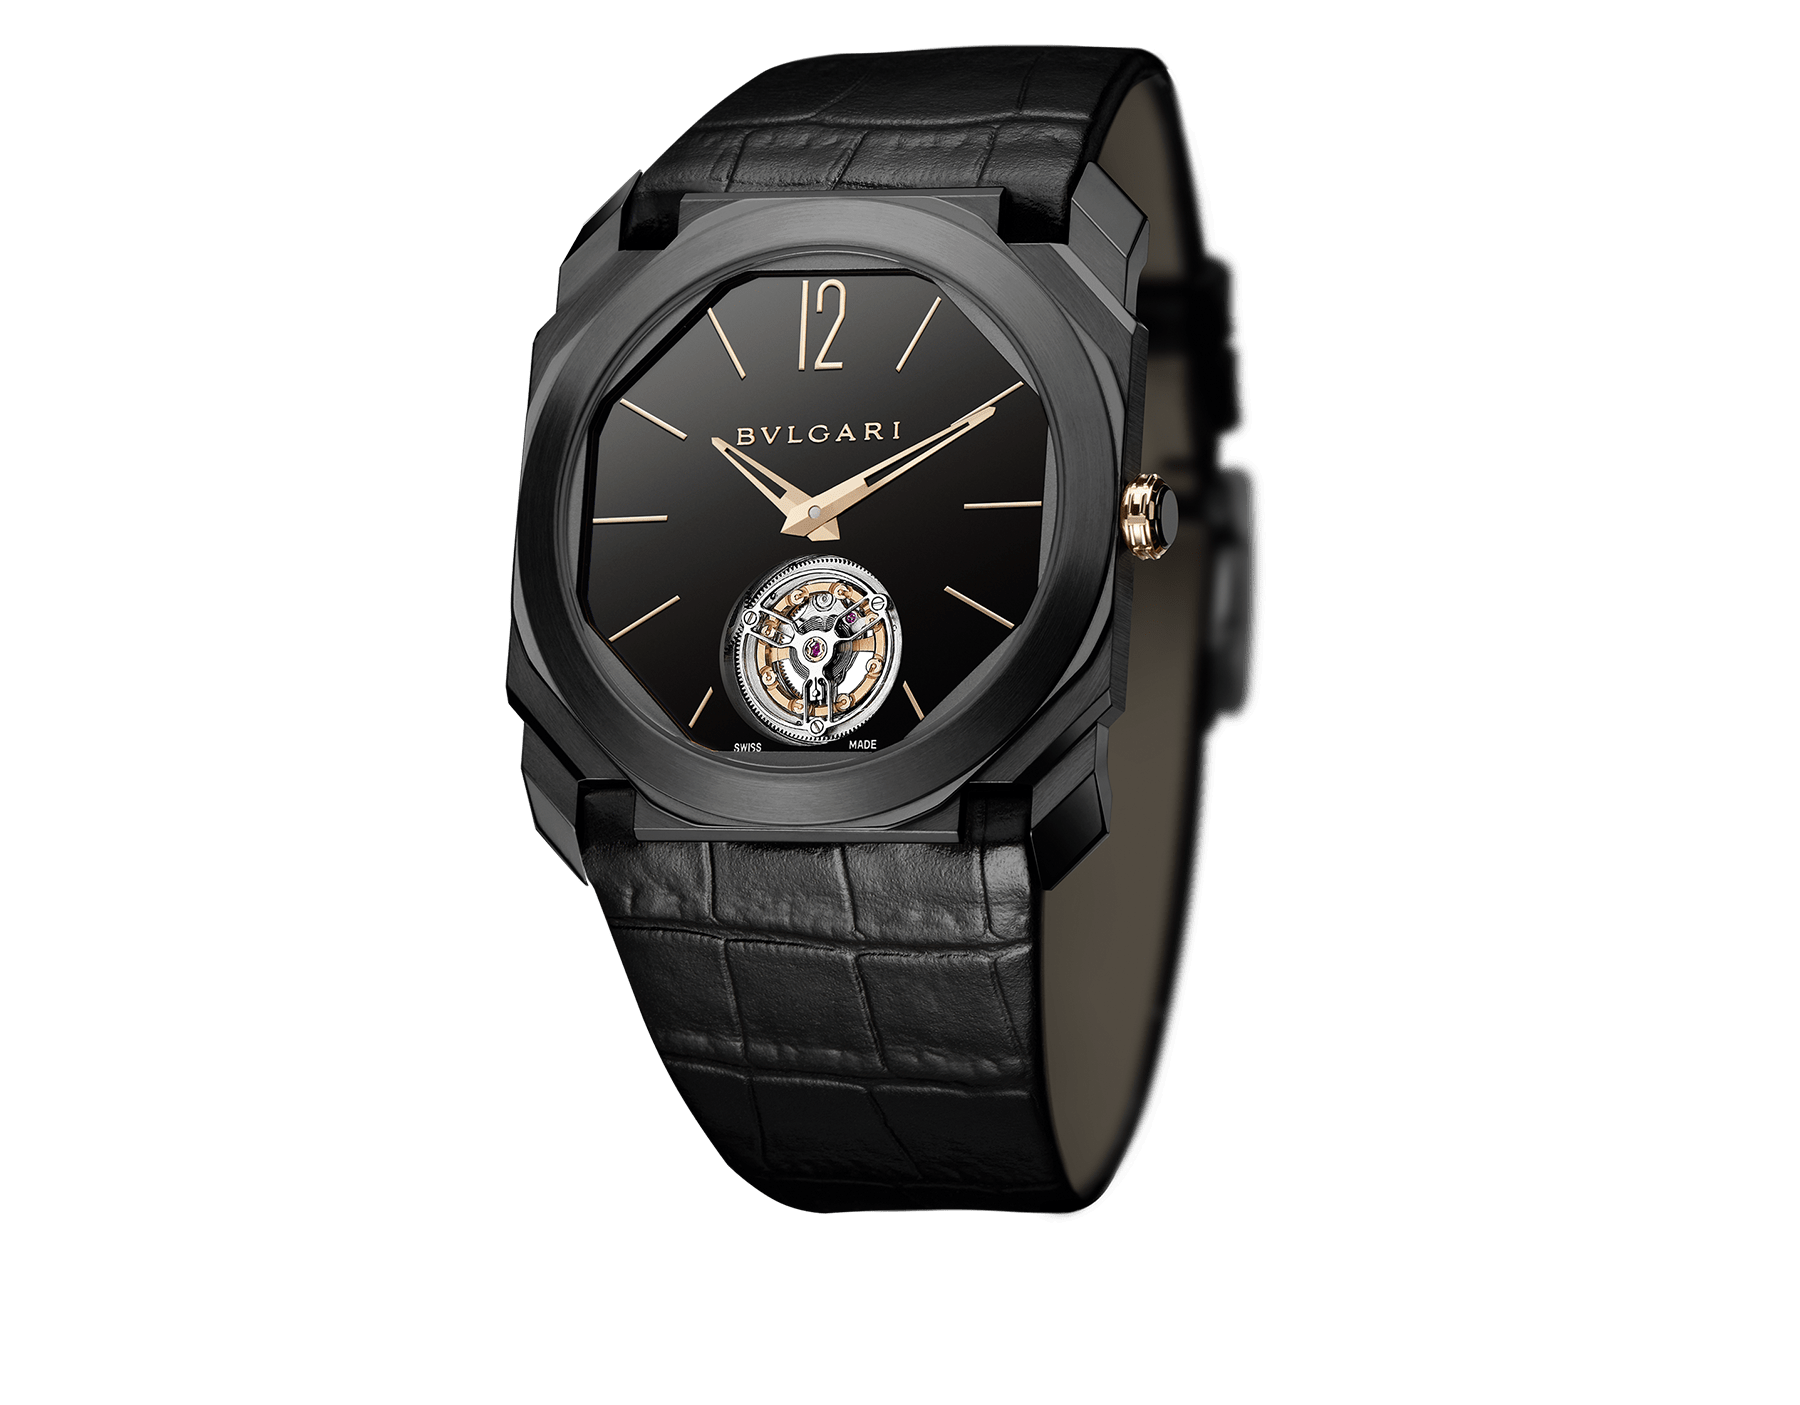 Orologio Octo Finissimo Tourbillon con movimento meccanico di manifattura ultrapiatto a carica manuale con cuscinetti a sfera, cassa in titanio con trattamento DLC (Diamond-Like Carbon), quadrante laccato nero con tourbillon a vista e cinturino in alligatore nero. 102560 image 2